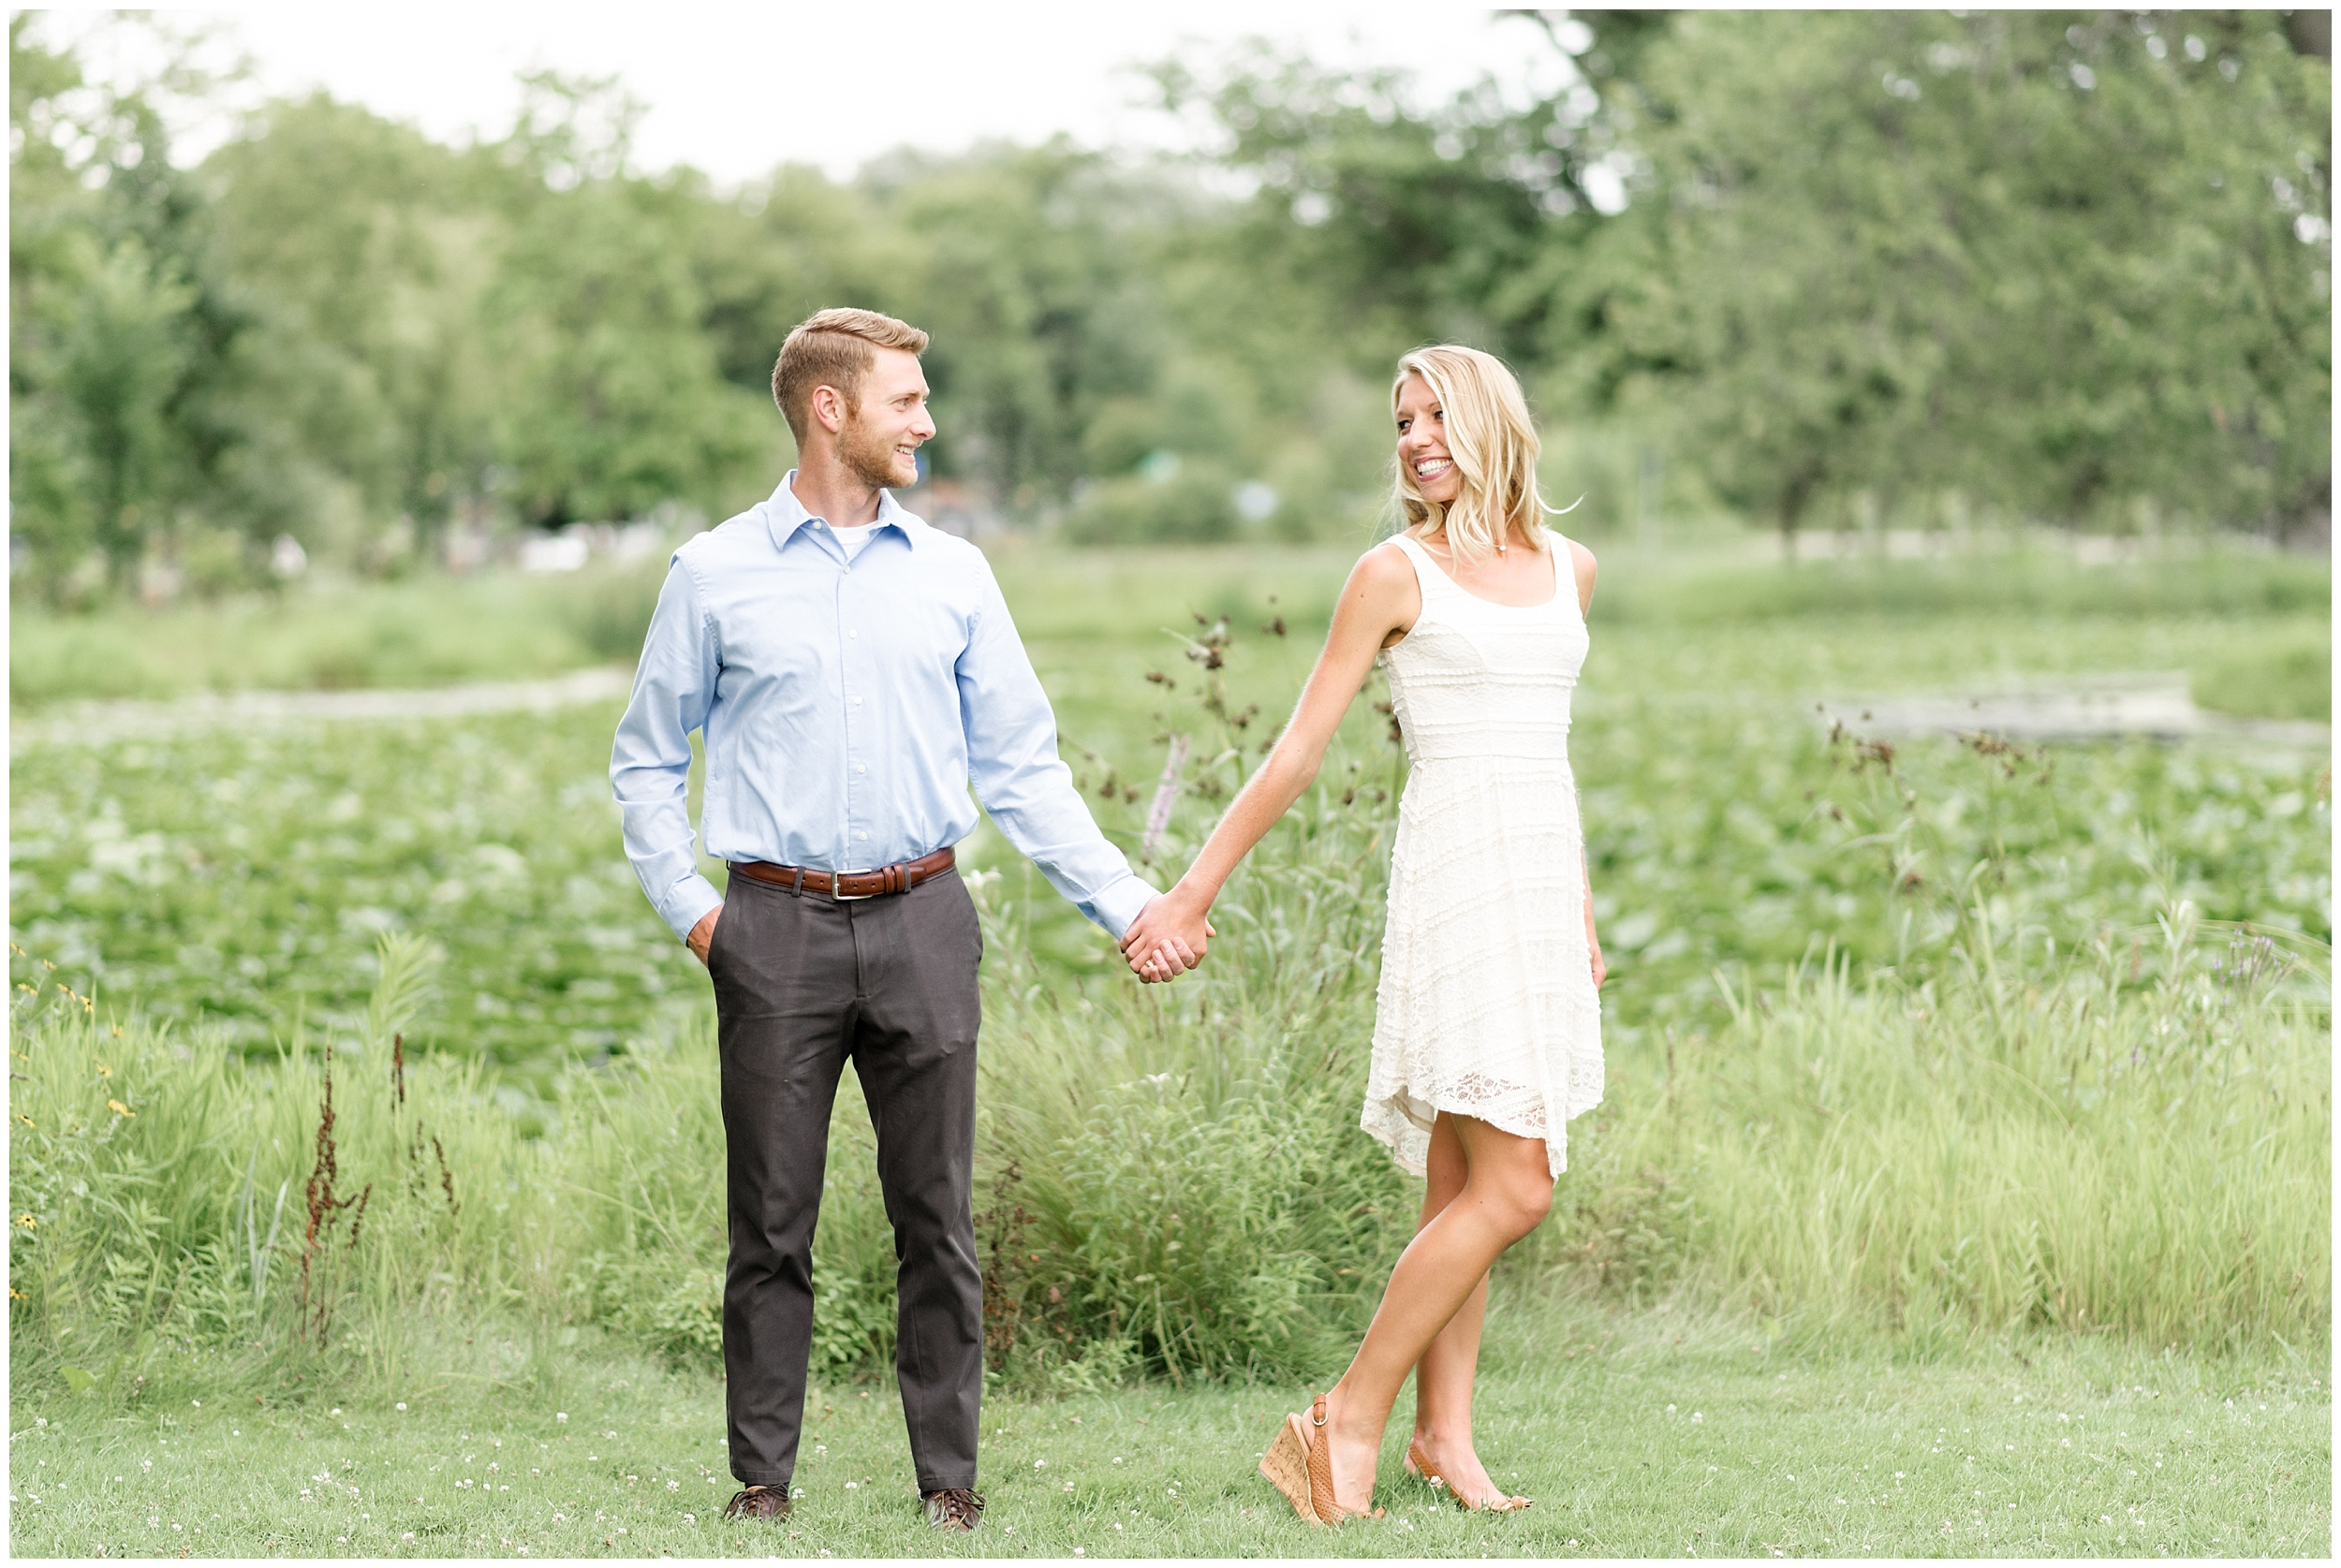 tenney-park-engagement-session-madison-wisconsin-bright-light-airy-wedding-photographer_0004.jpg